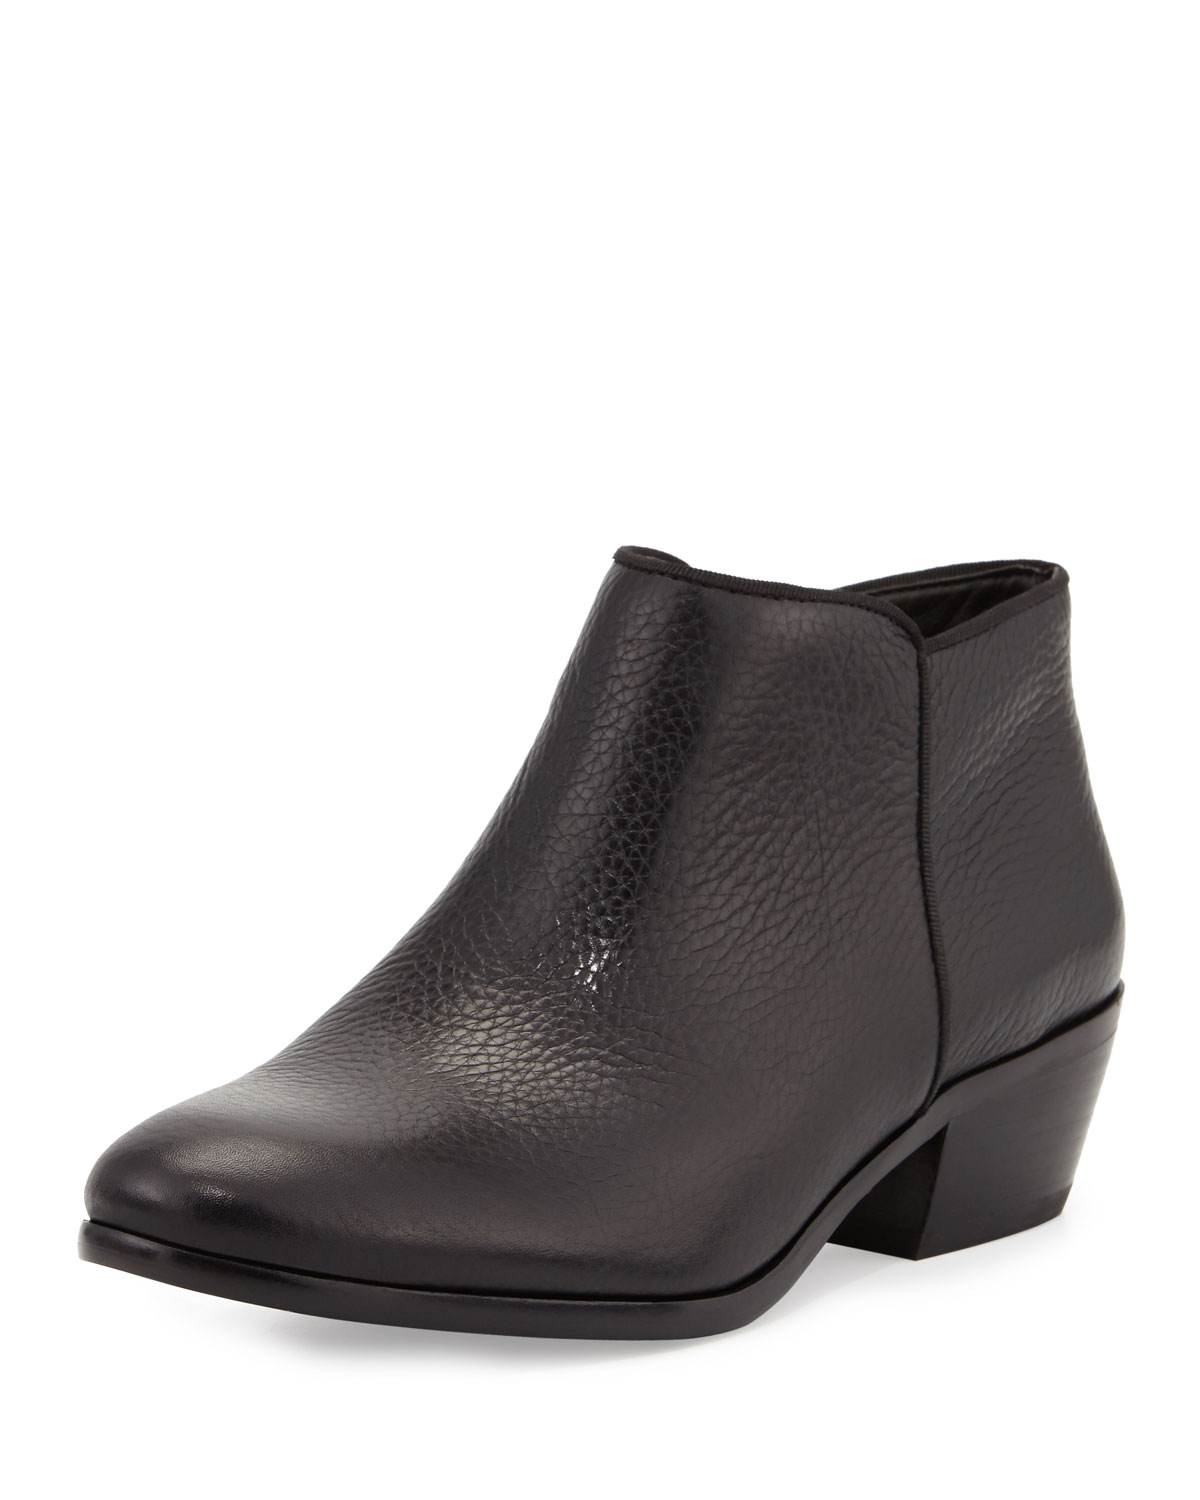 8874ba3eb908 Sam Edelman Petty Leather Ankle Bootie